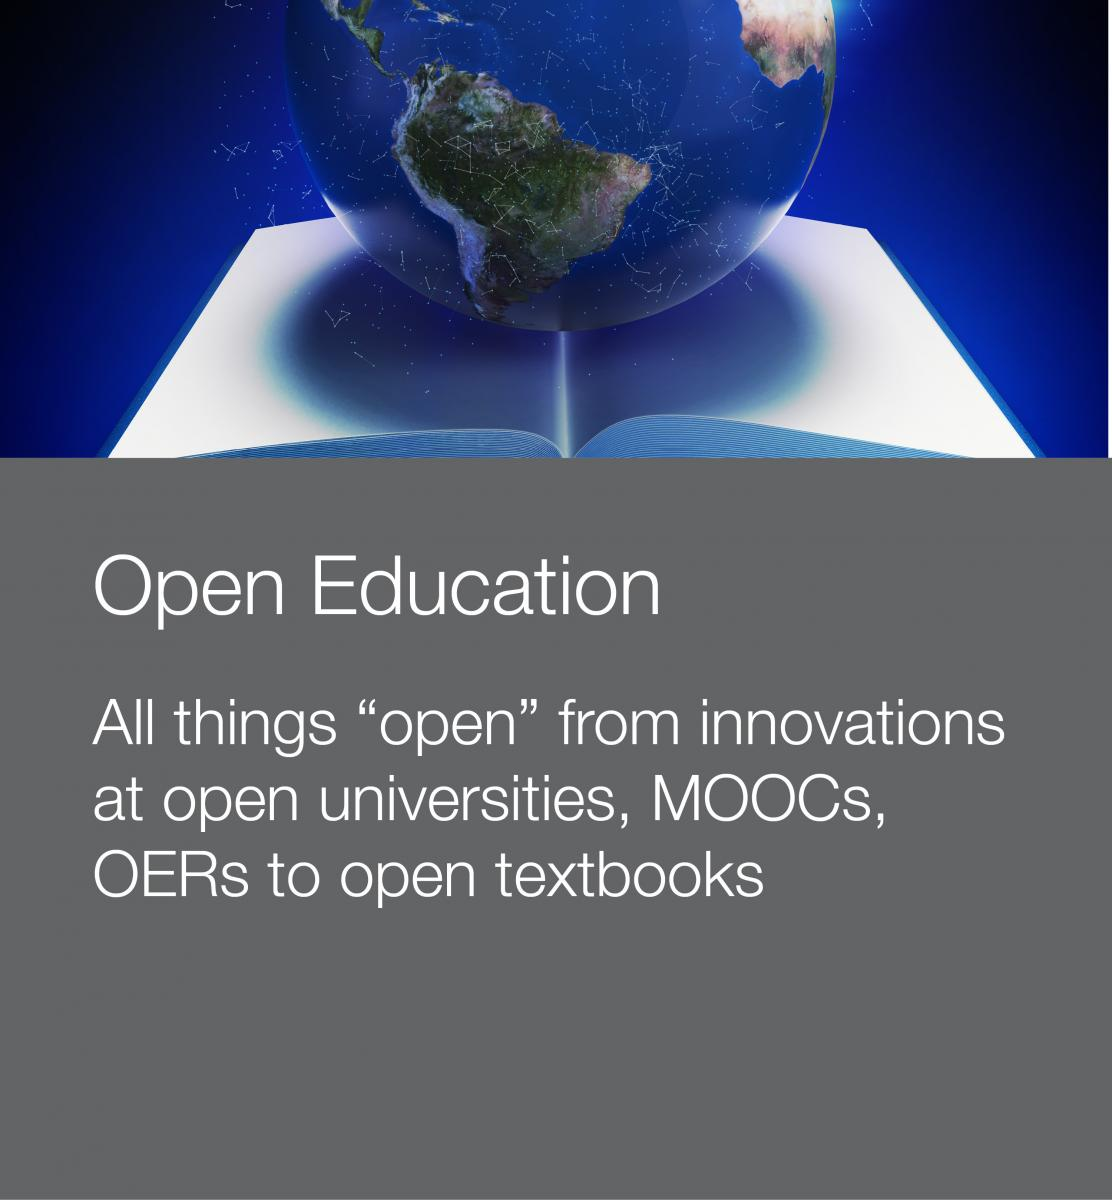 Stock photo to illustrate open education innovations